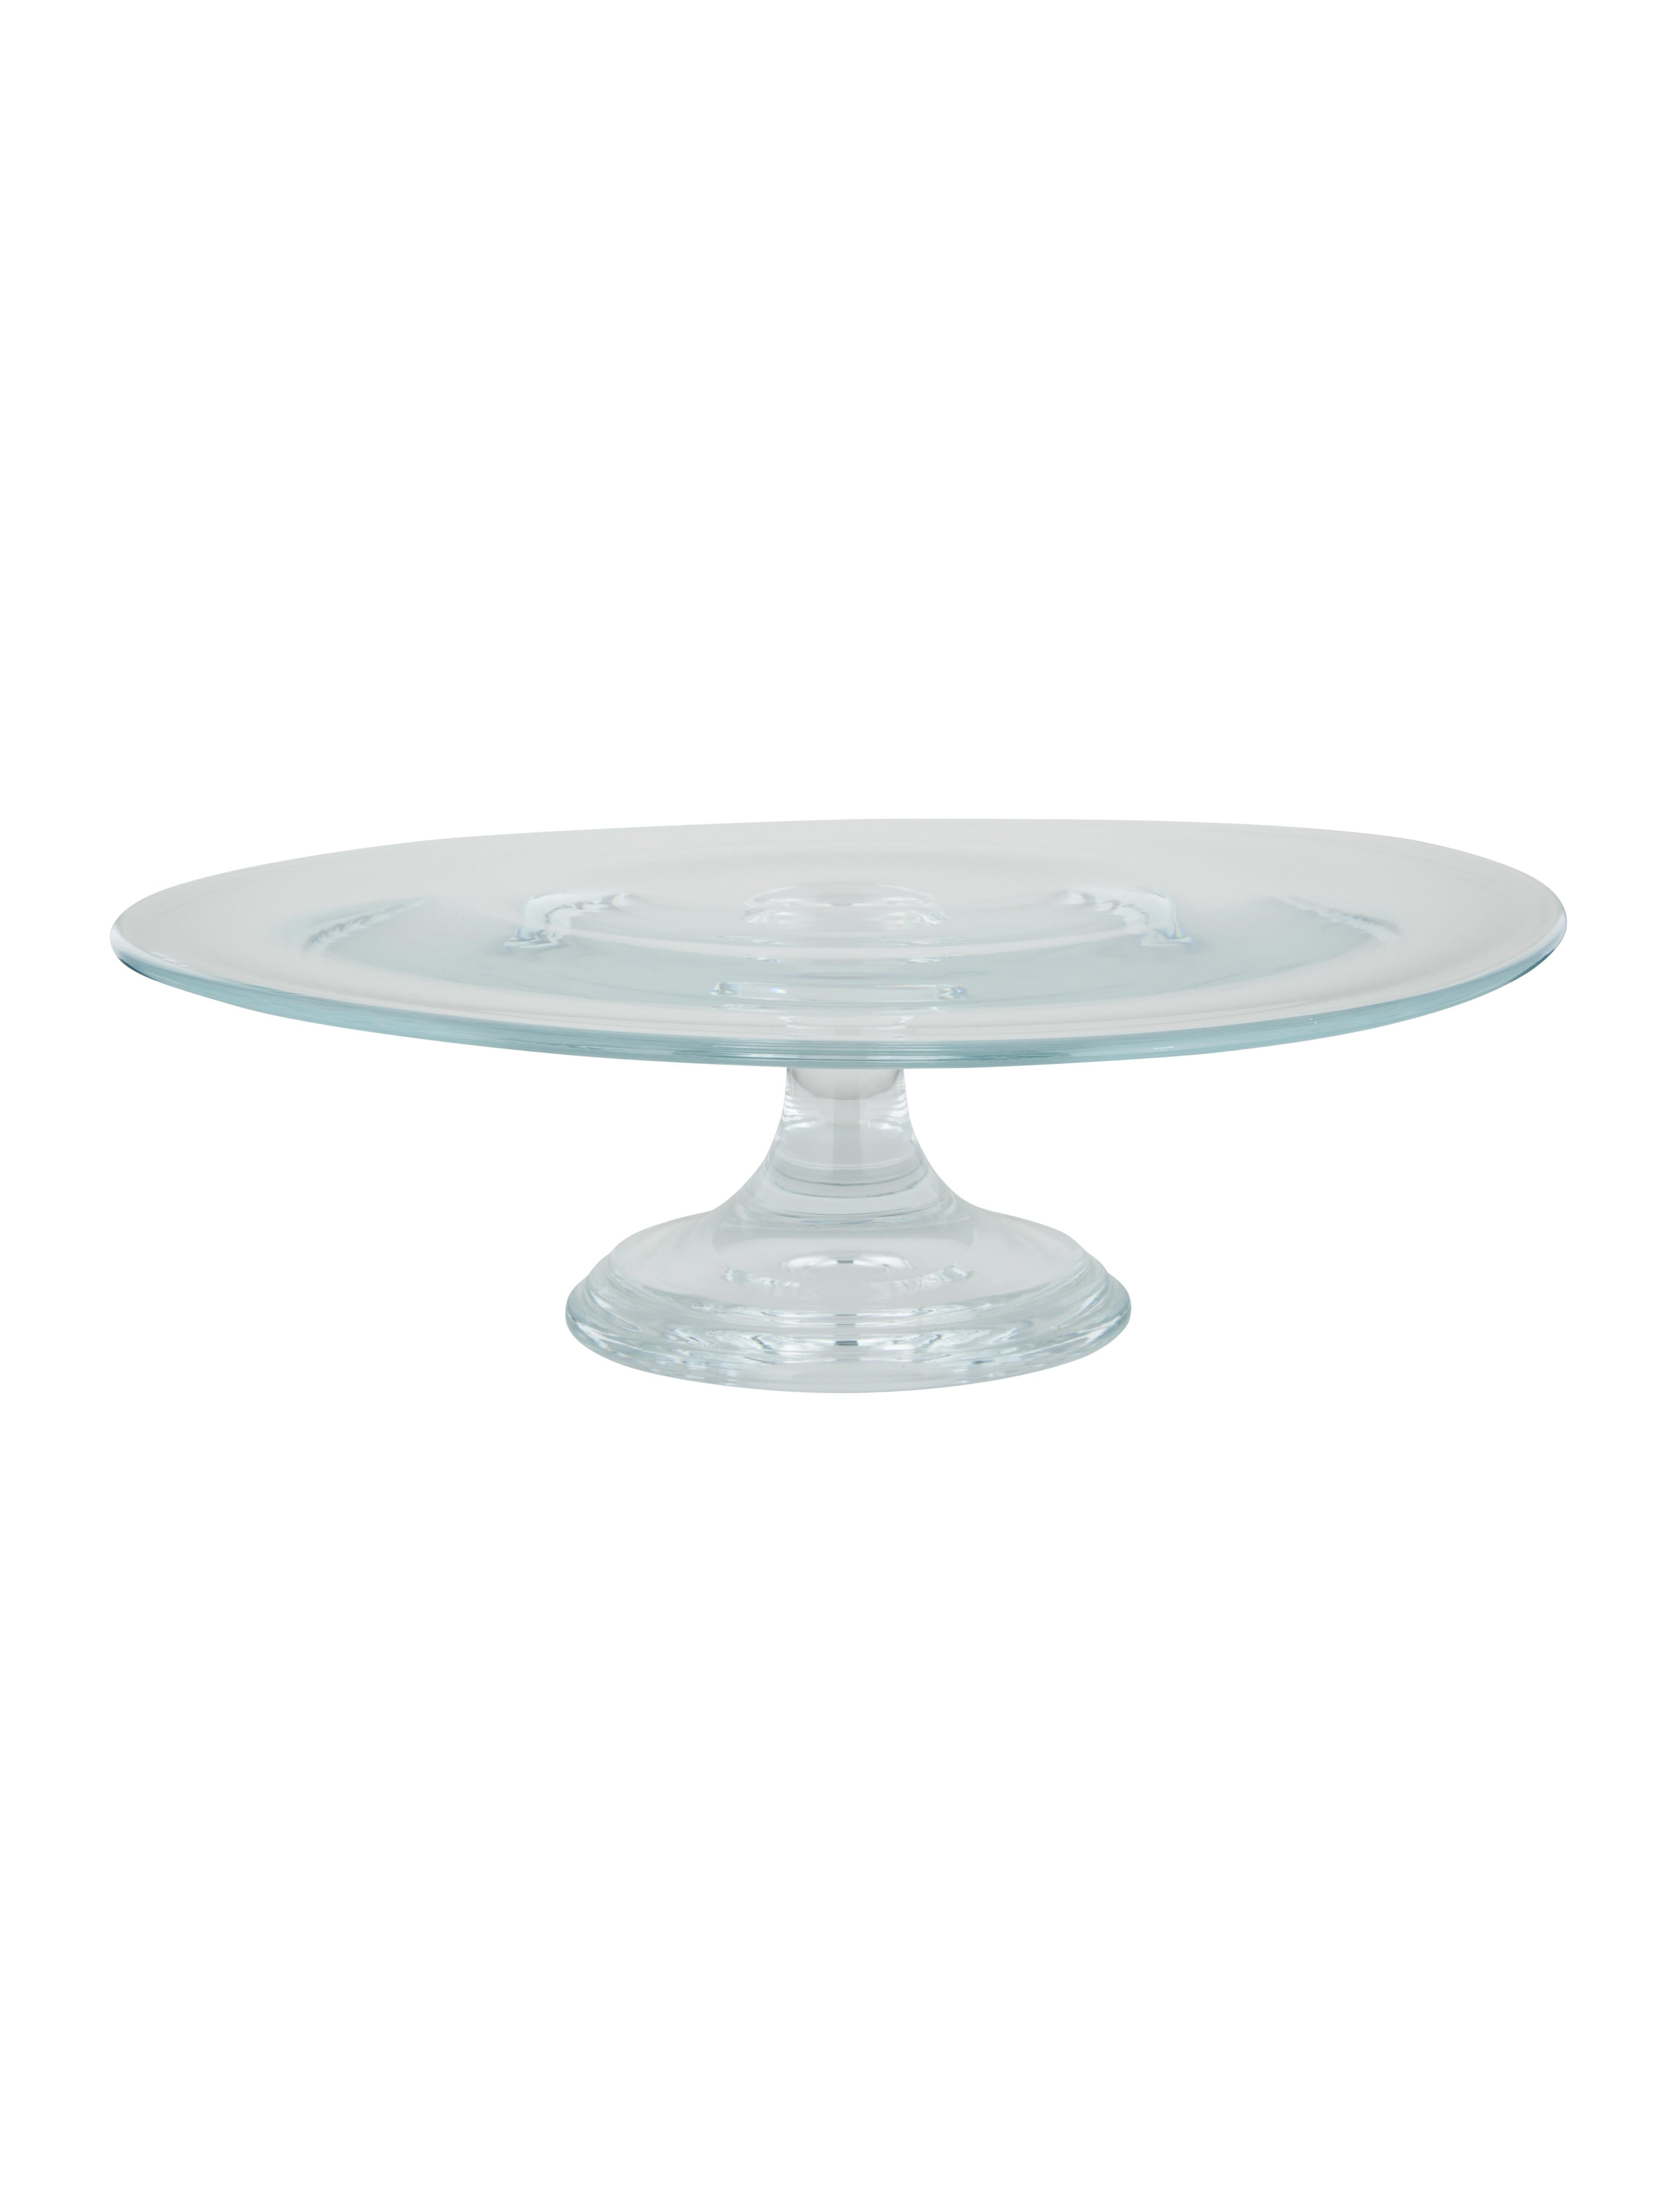 Crystal Cake Plate  sc 1 st  The RealReal & Tiffany \u0026 Co. Crystal Cake Plate - Tabletop And Kitchen - TIF55646 ...